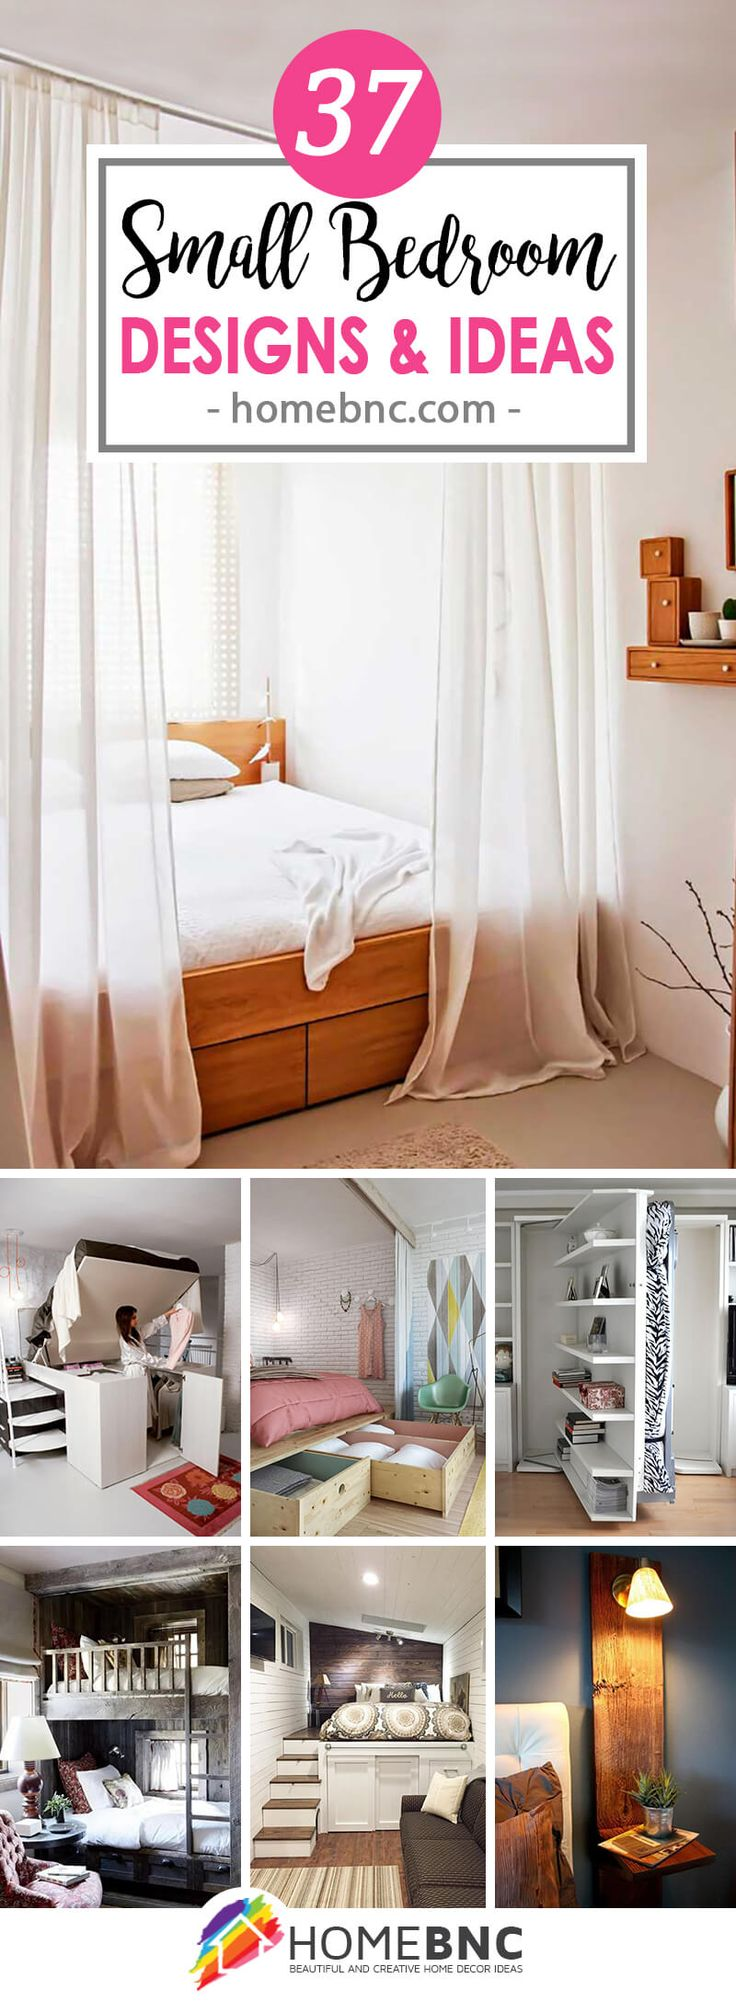 Best  Small Bedroom Designs Ideas On Pinterest - Bedroom ideas small spaces